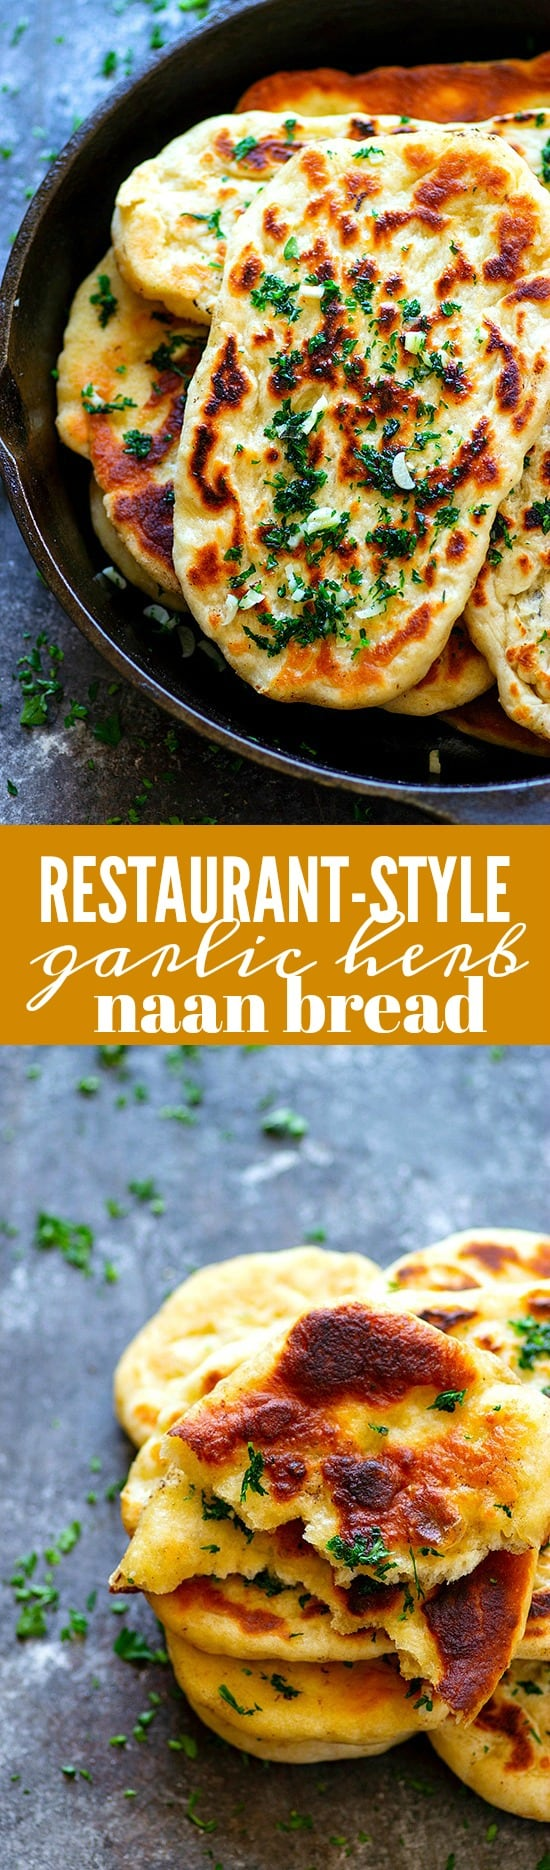 Restaurant-Style Garlic Herb Naan Bread - Impossibly soft and pillowy restaurant-style garlic herb naan bread is SUPER easy to make at home and the best side to any curry or rice dish!